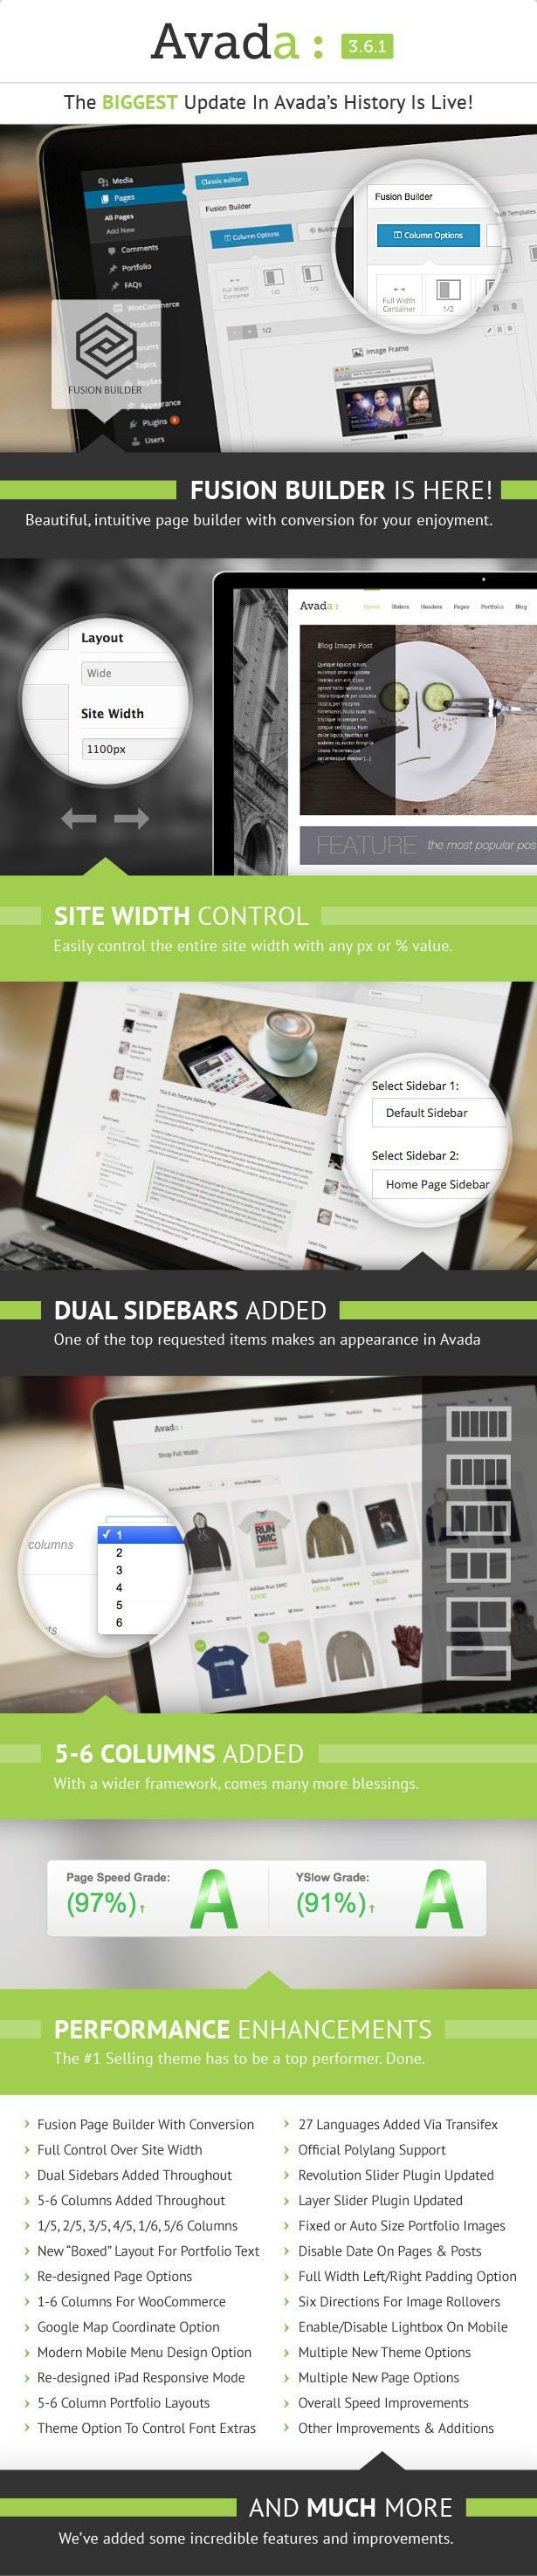 Avada | Responsive Multi-Purpose Theme on Behance